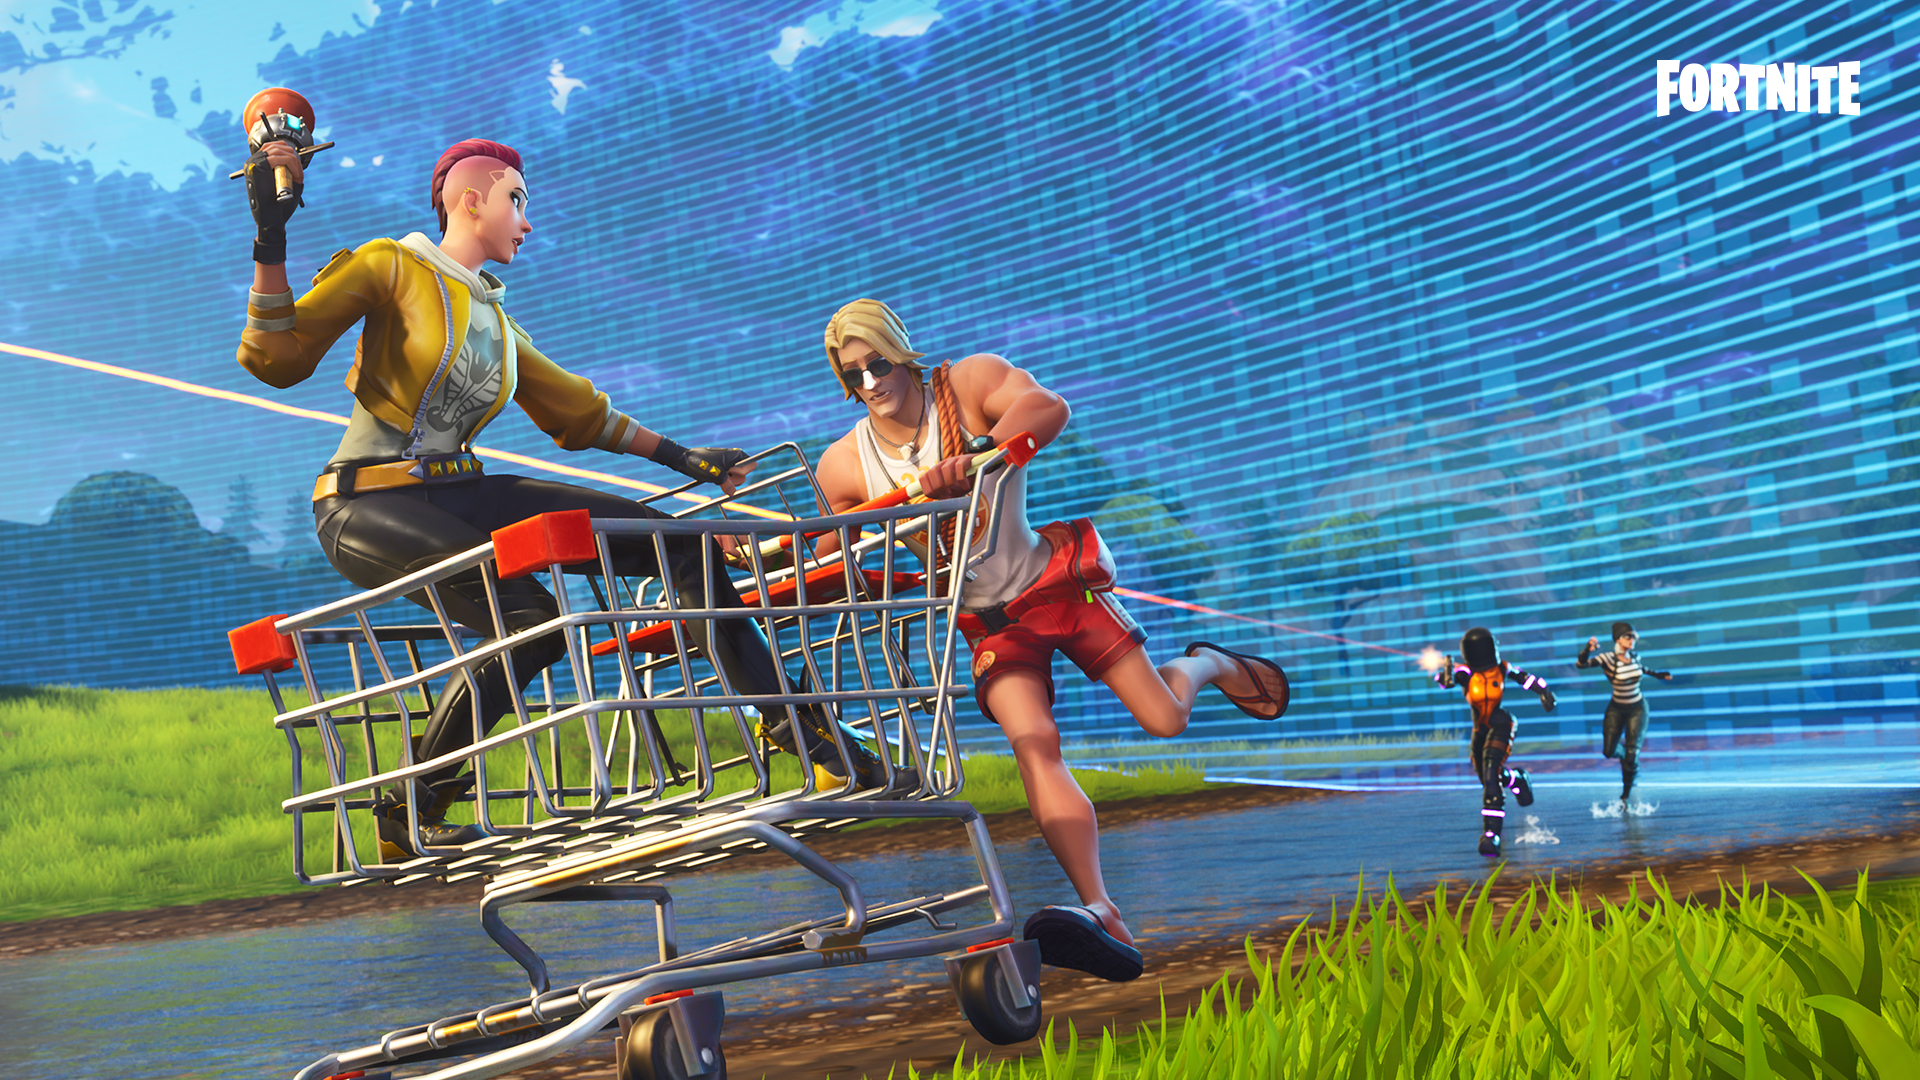 fortnite update 5.20 patch notes LTM